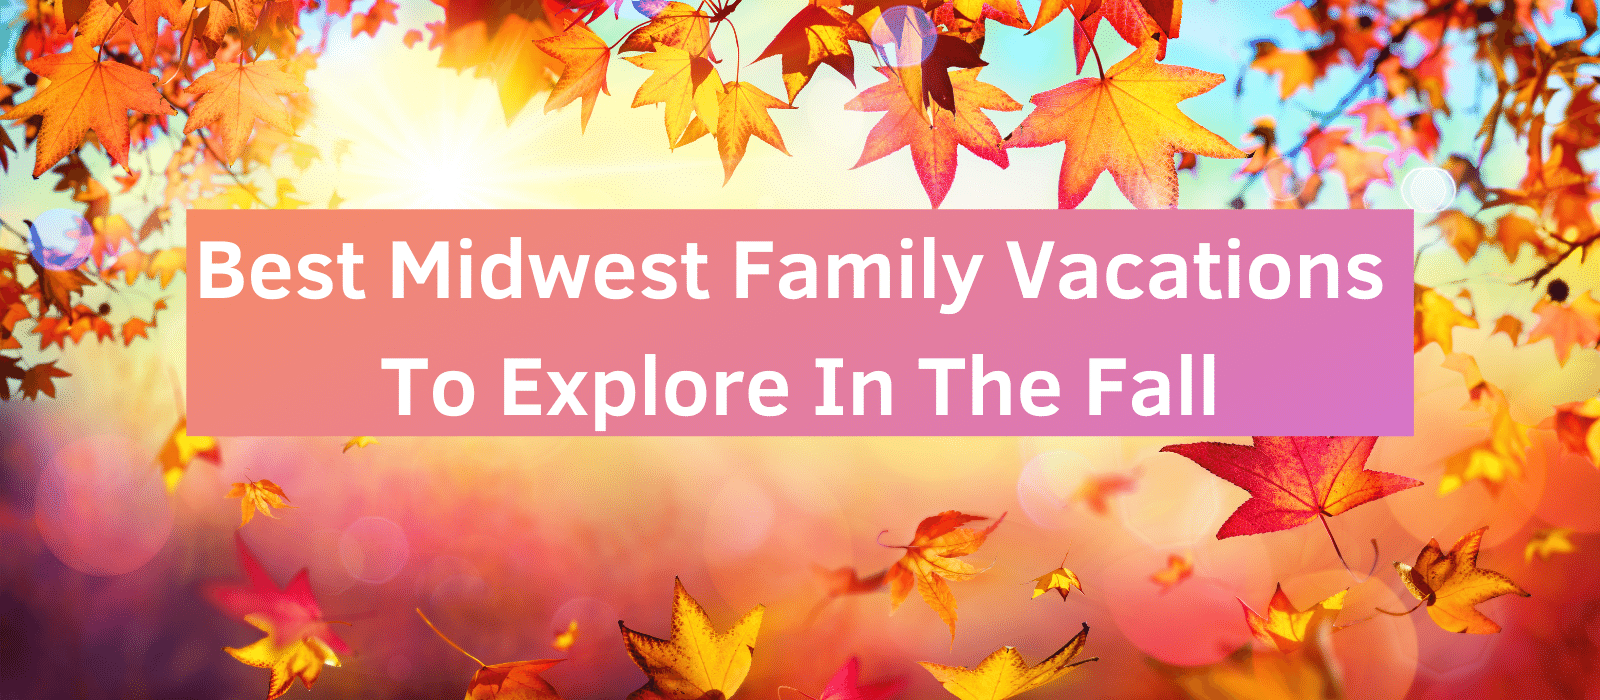 Best Midwest Family Vacations To Explore In The Fall